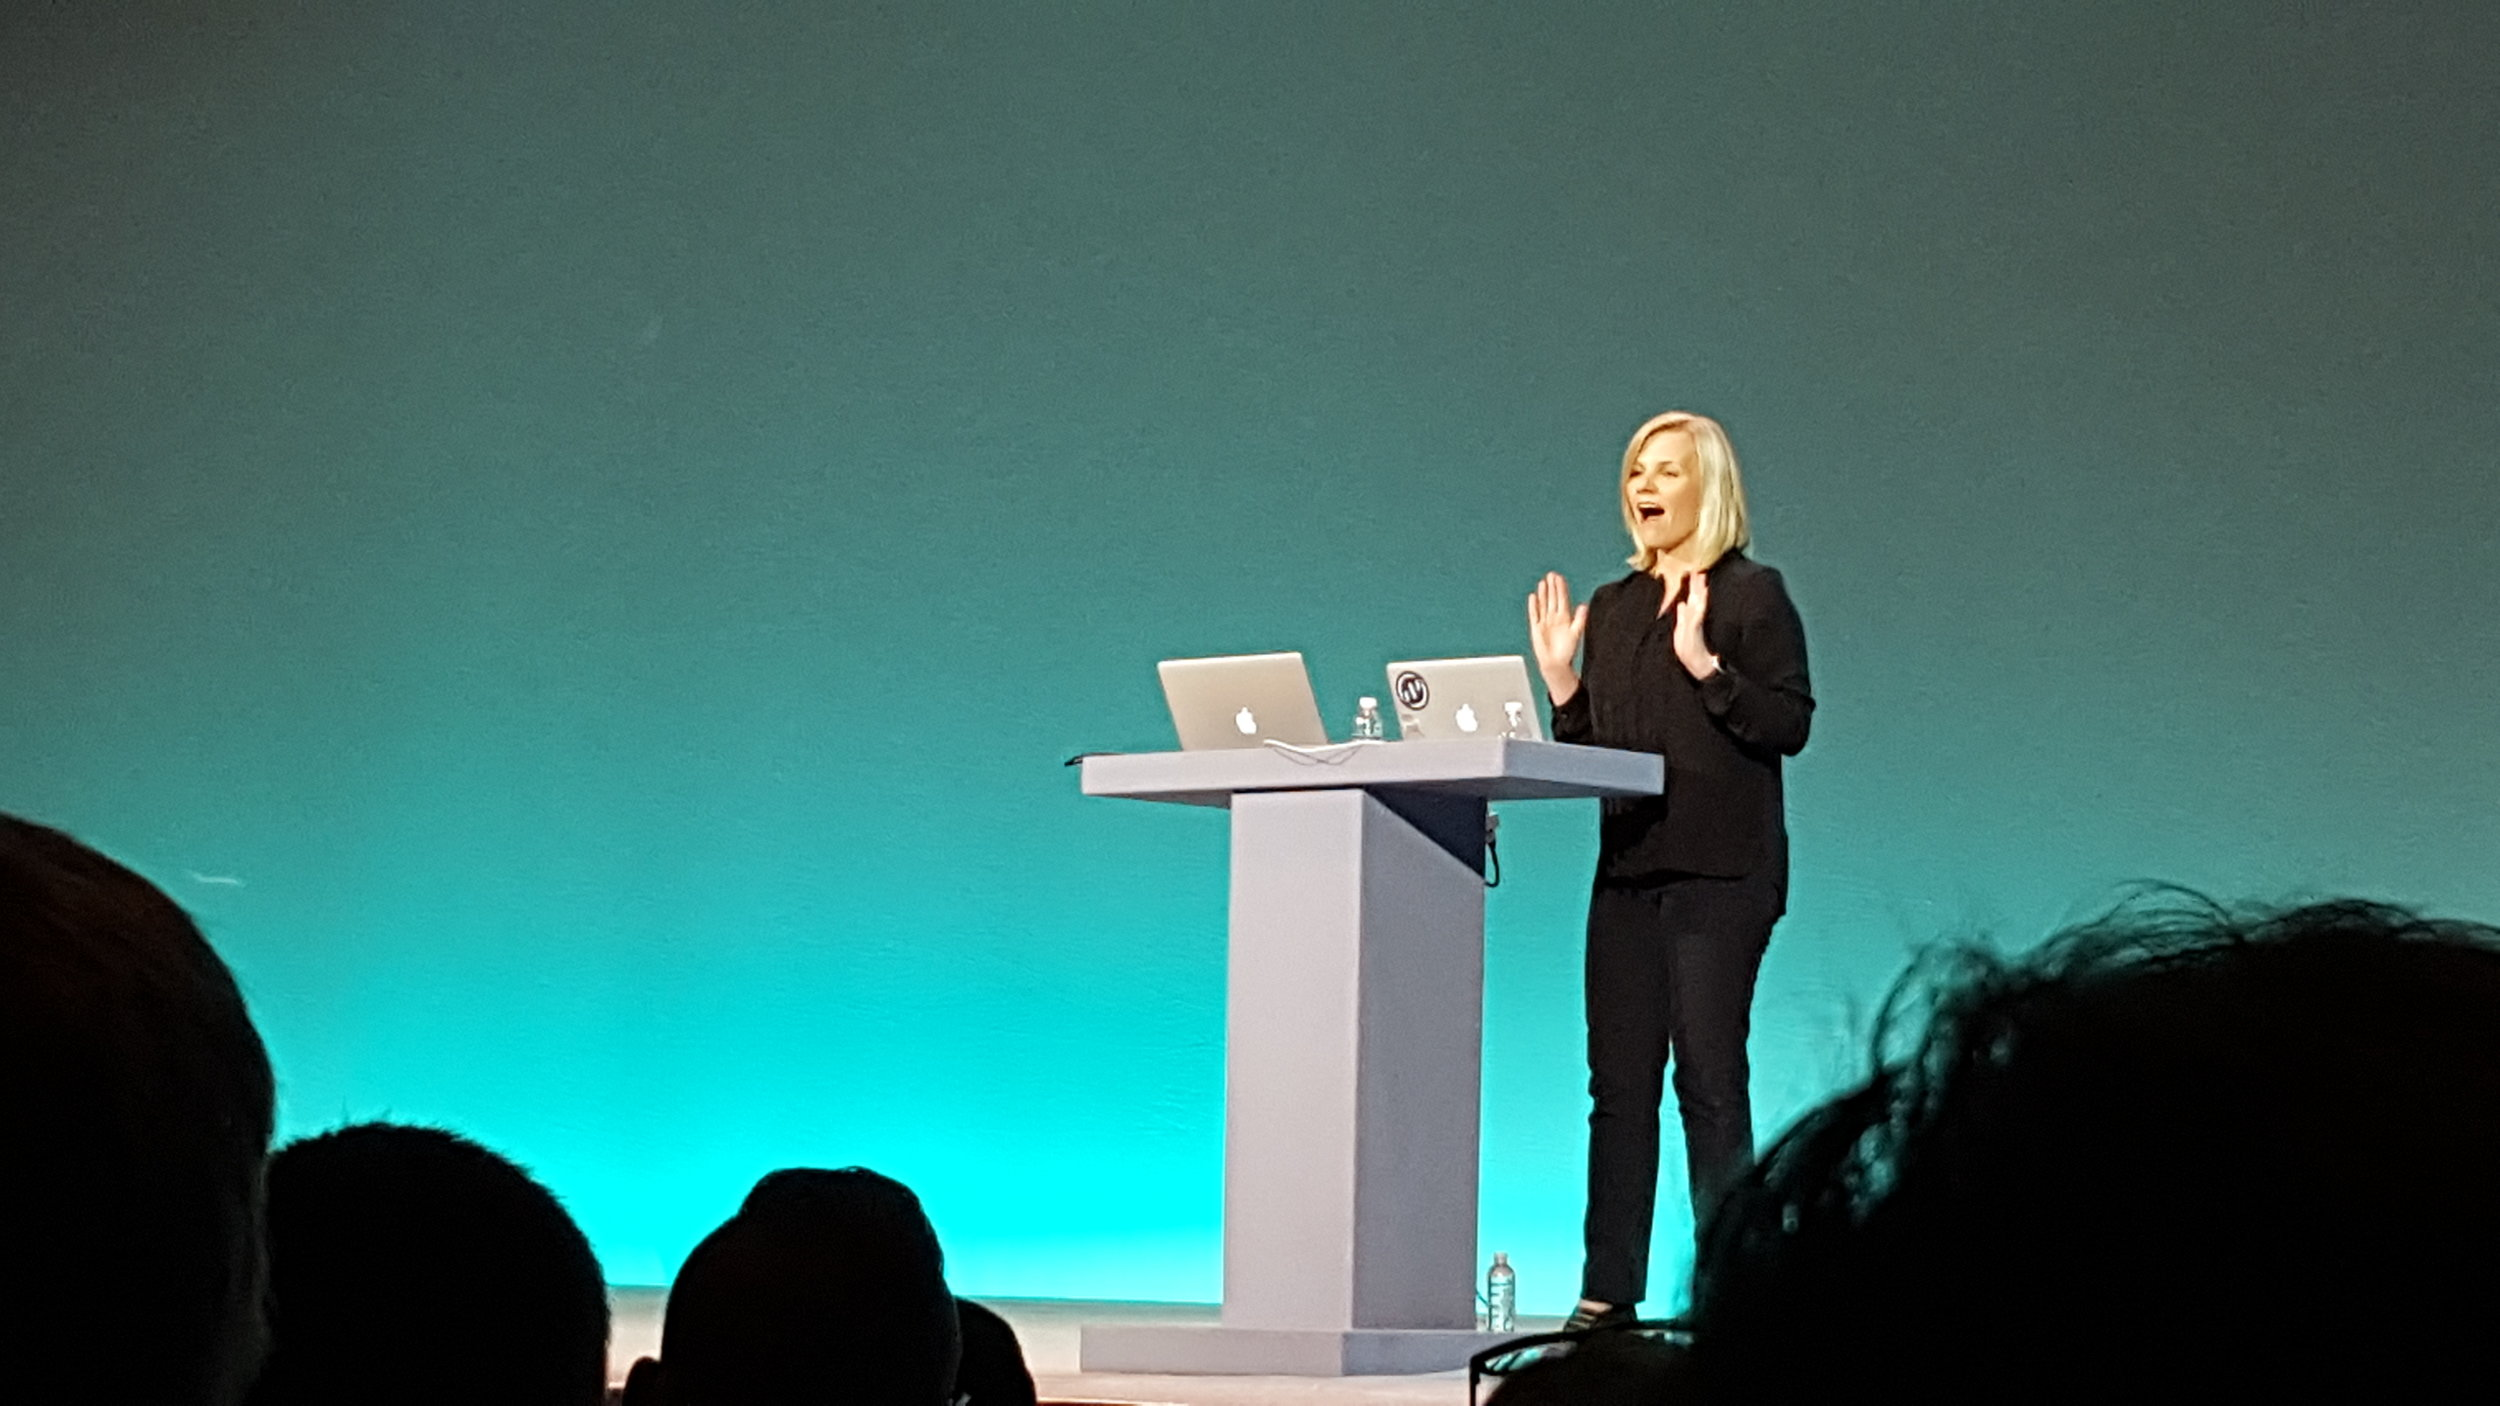 Ann-Marie Darrough: Director, Offering Management, IBM Watson Work. Giving a dynamite presentation at the opening general session. She is a fellow Canadian and we are excited to see her in this role.  https://twitter.com/amdarrough